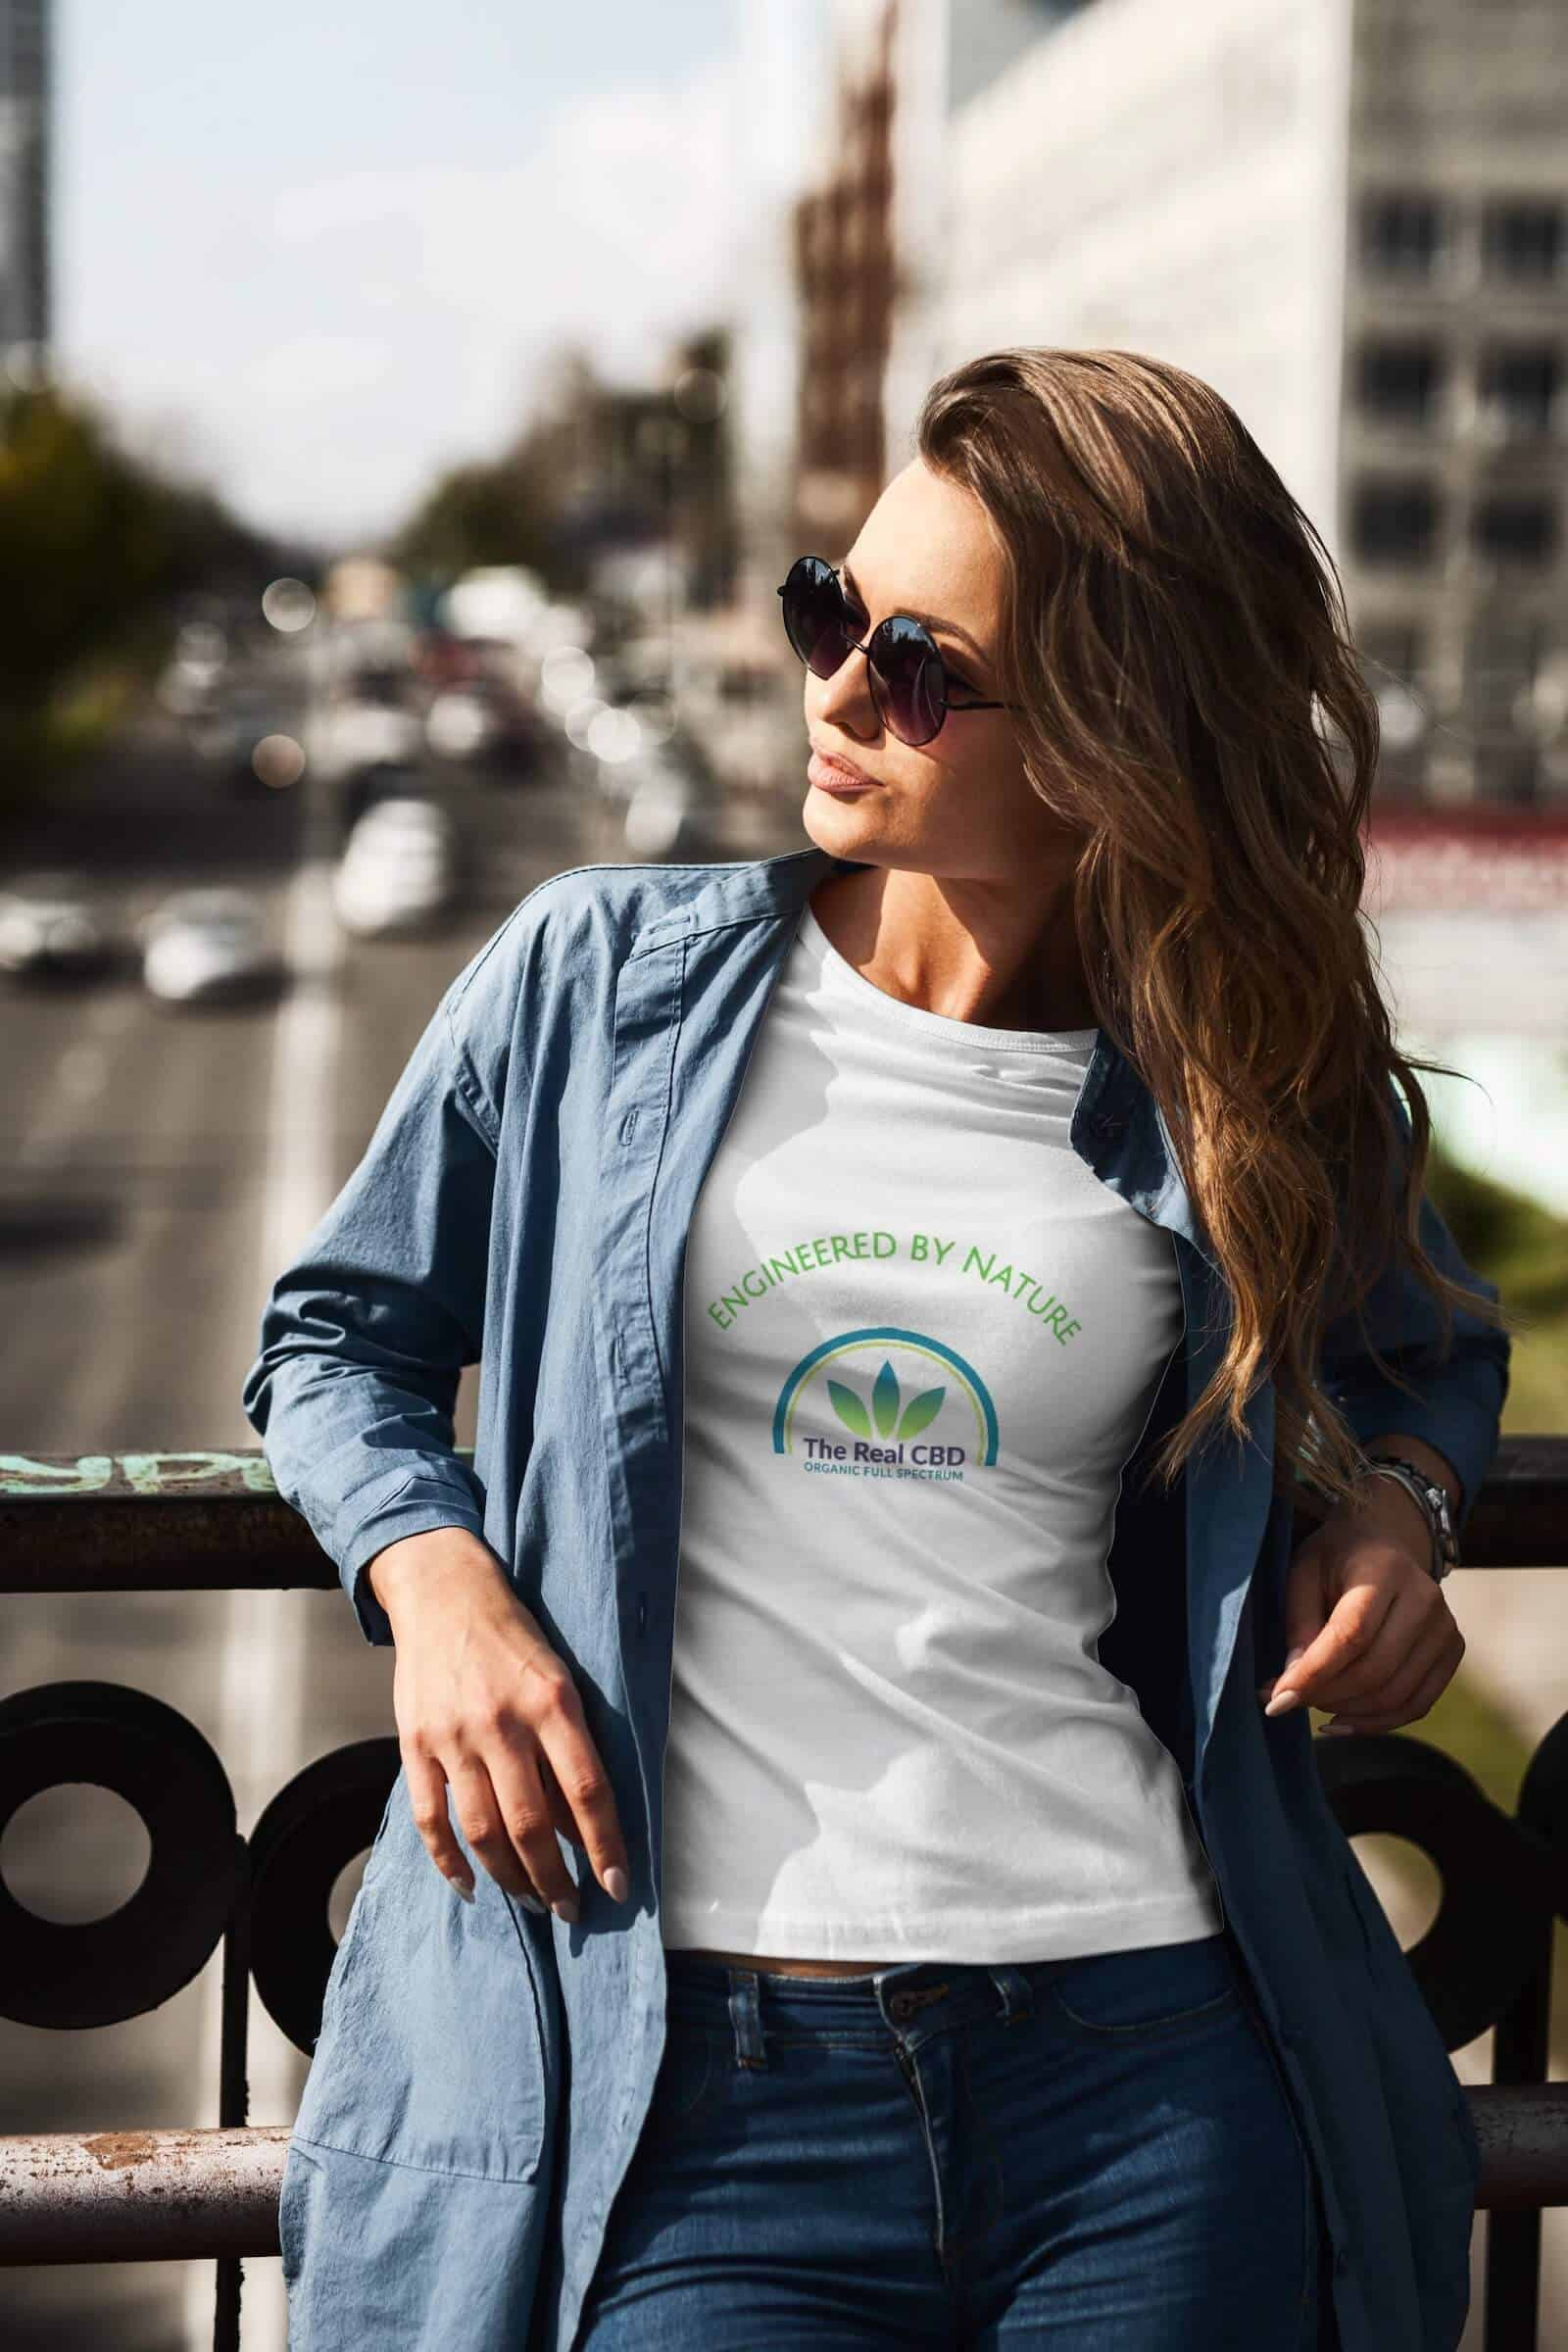 the-real-cbd-girl-tshirt-branding